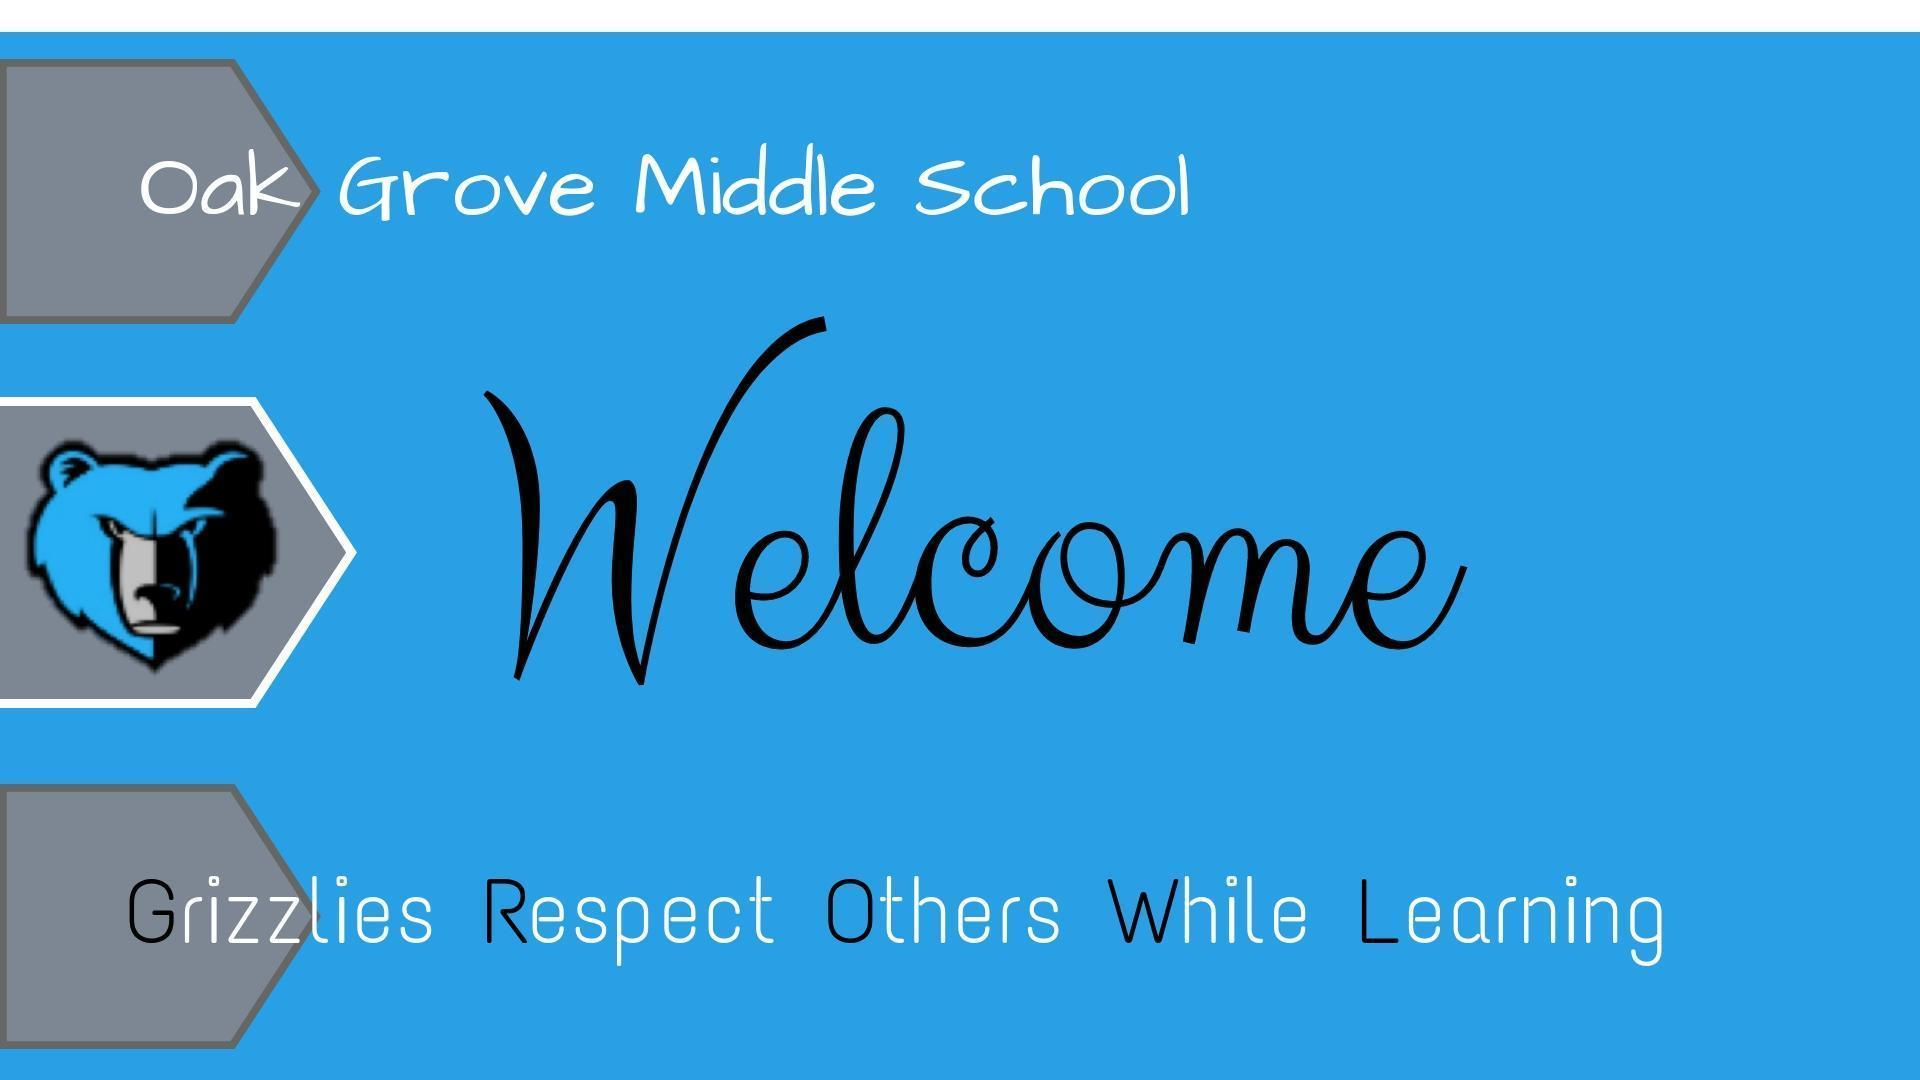 OGMS Motto: Grizzlies Respect Others While Learning